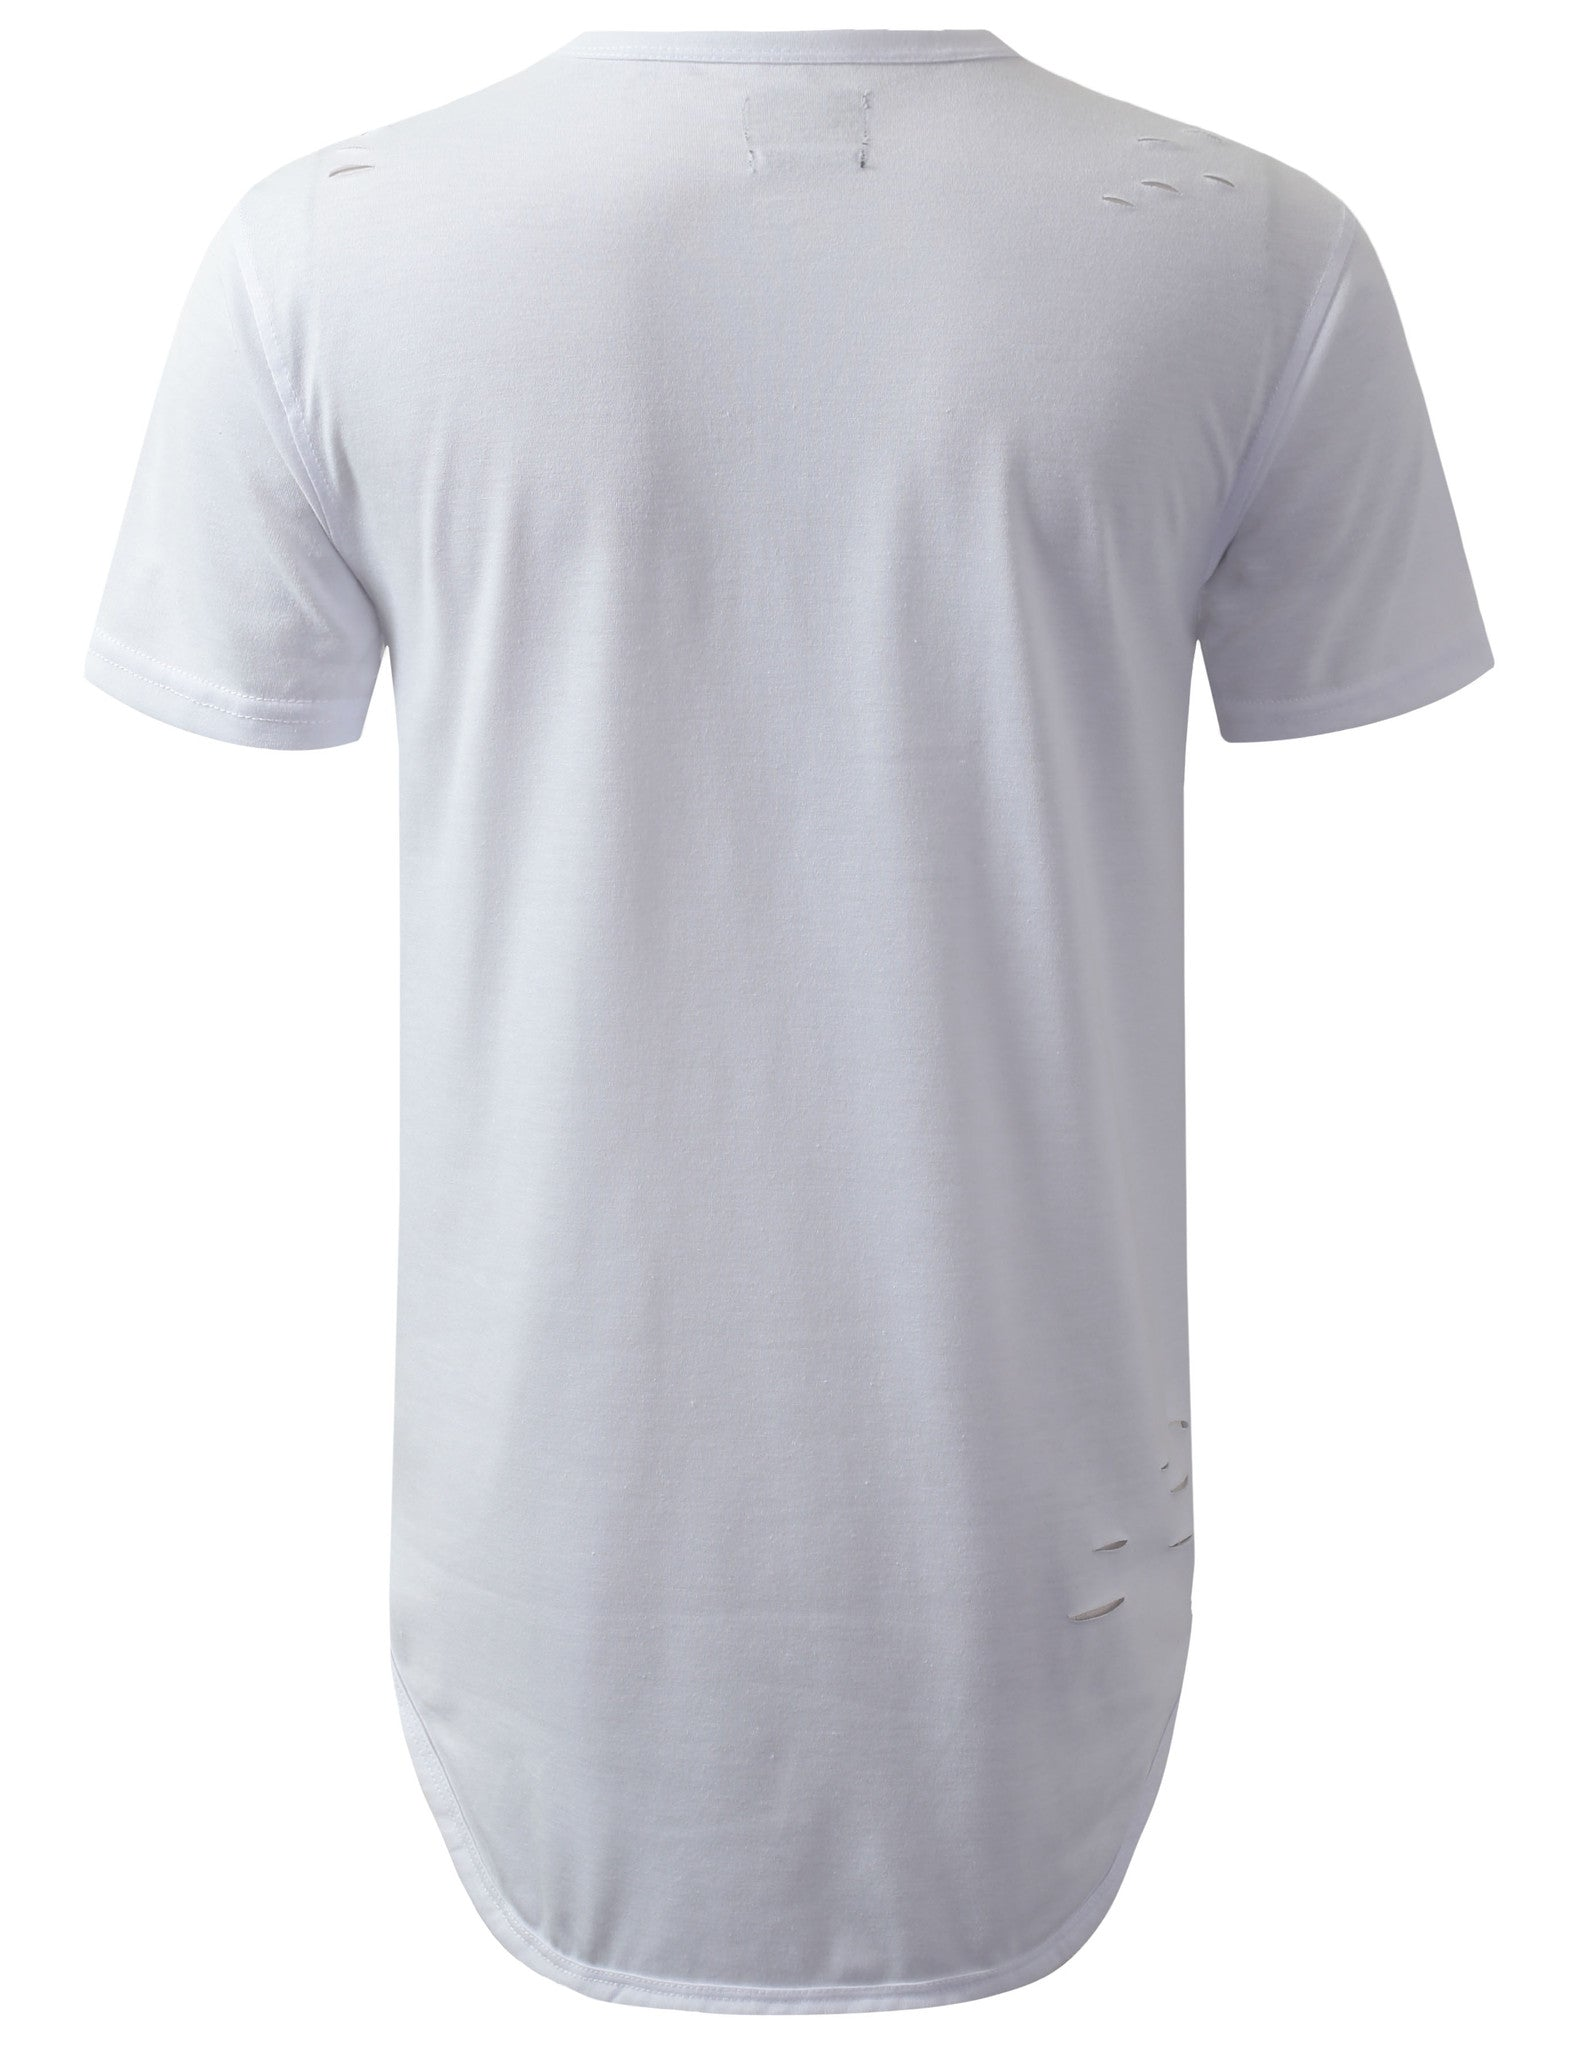 WHITE Ripped Henley Zipper Longline Crewneck Tshirt - URBANCREWS